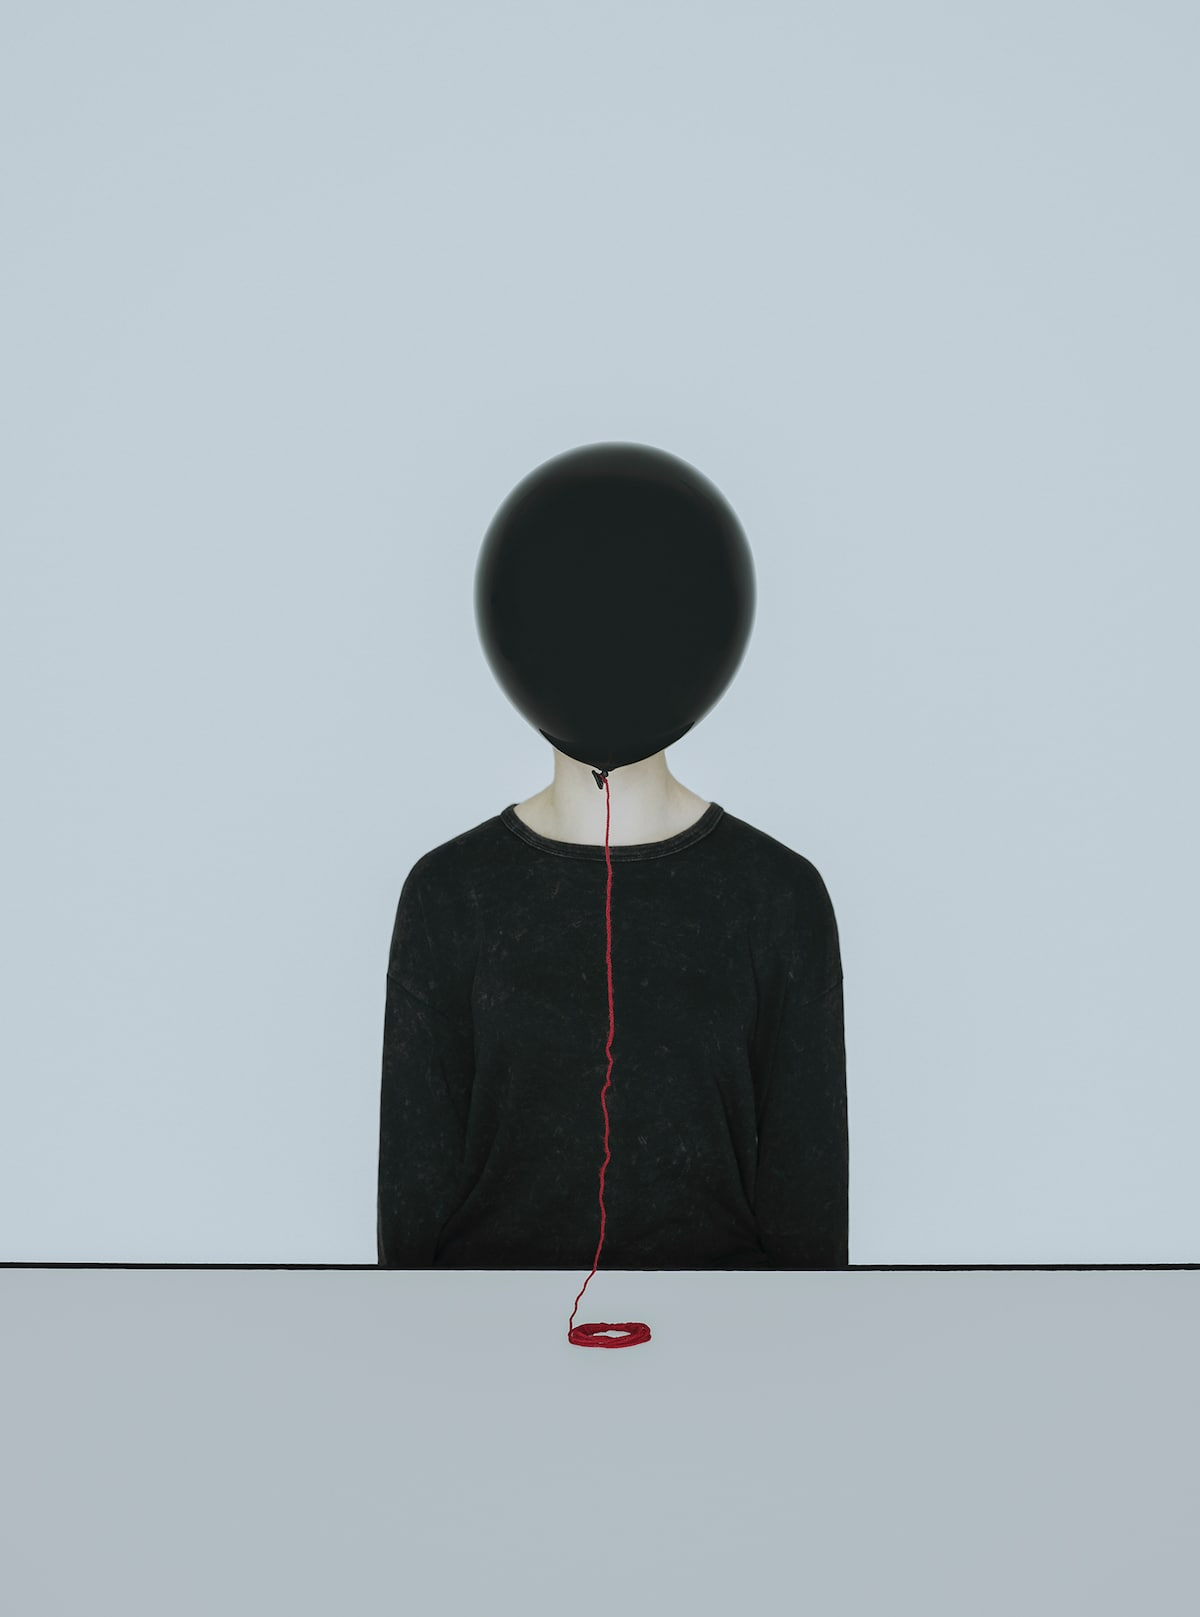 Surreal Photography Ideas by Gabriel Isak